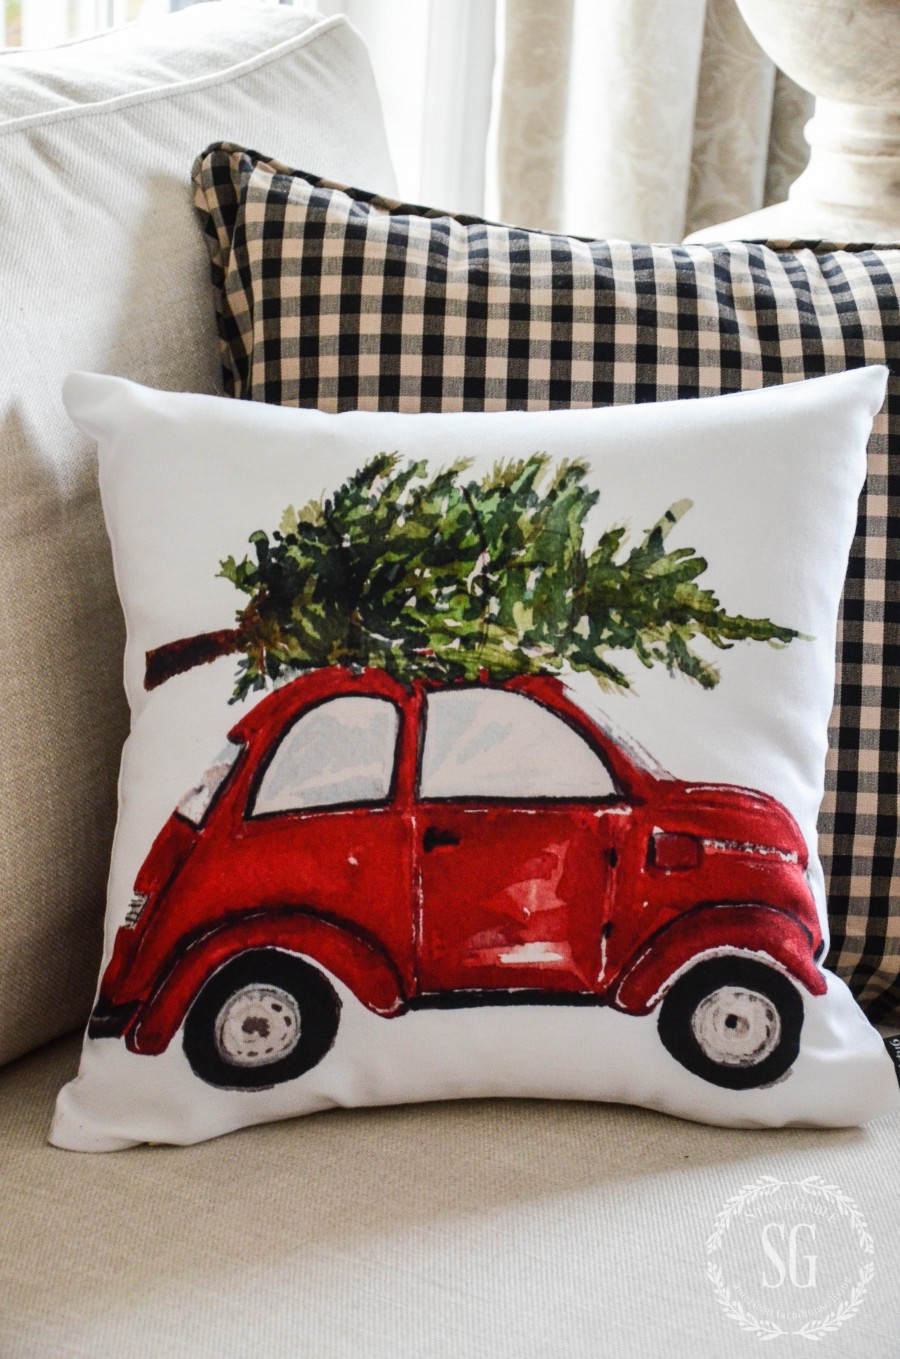 CHRISTMAS PILLOW LOVE. Decorate your home with festive Christmas Pillows. Here's a few and some tips too!